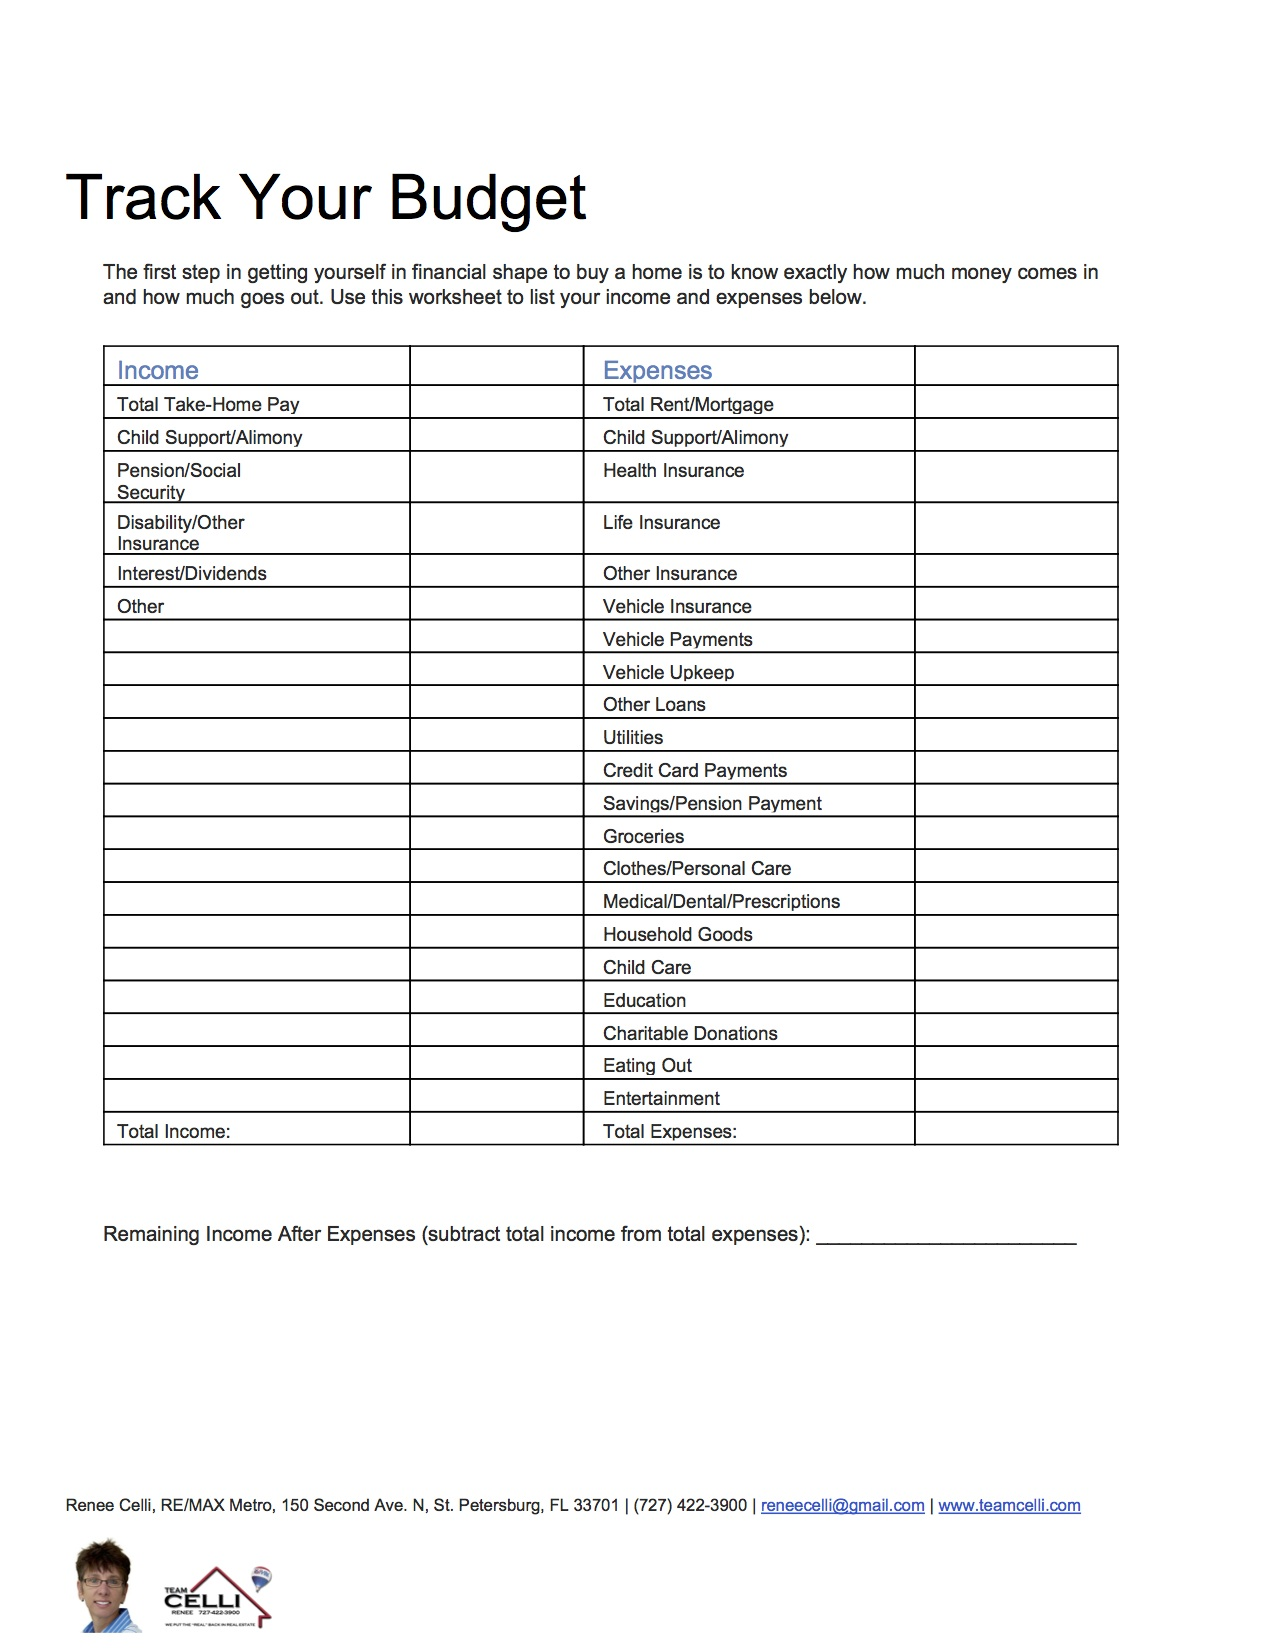 Use A Budget Worksheet To Prepare For Buying A Home